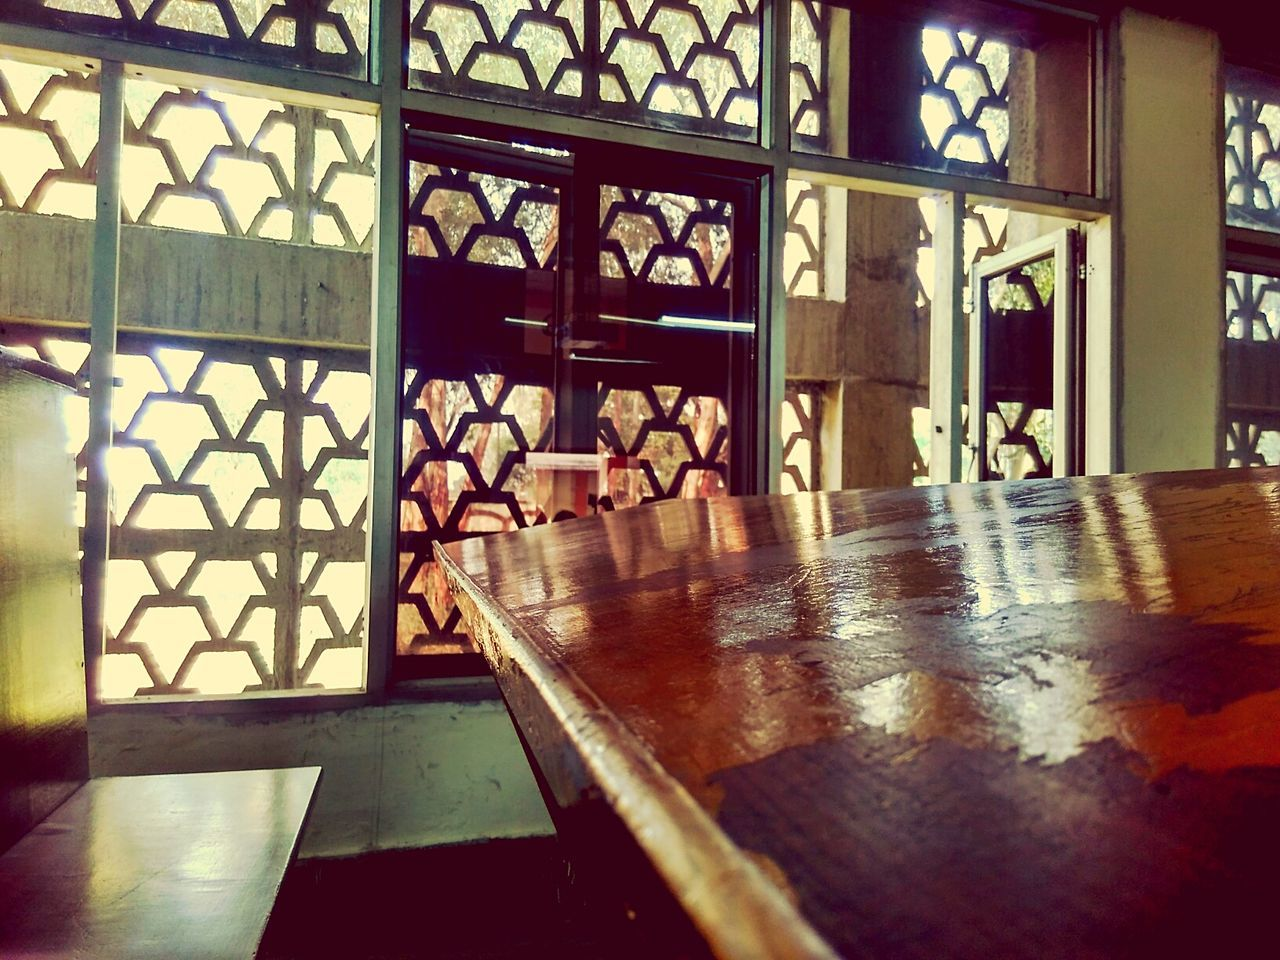 indoors, flooring, architecture, day, no people, table, window, built structure, wood - material, building, reflection, pattern, glass, seat, sunlight, spirituality, religion, wood, place of worship, architectural column, tiled floor, floral pattern